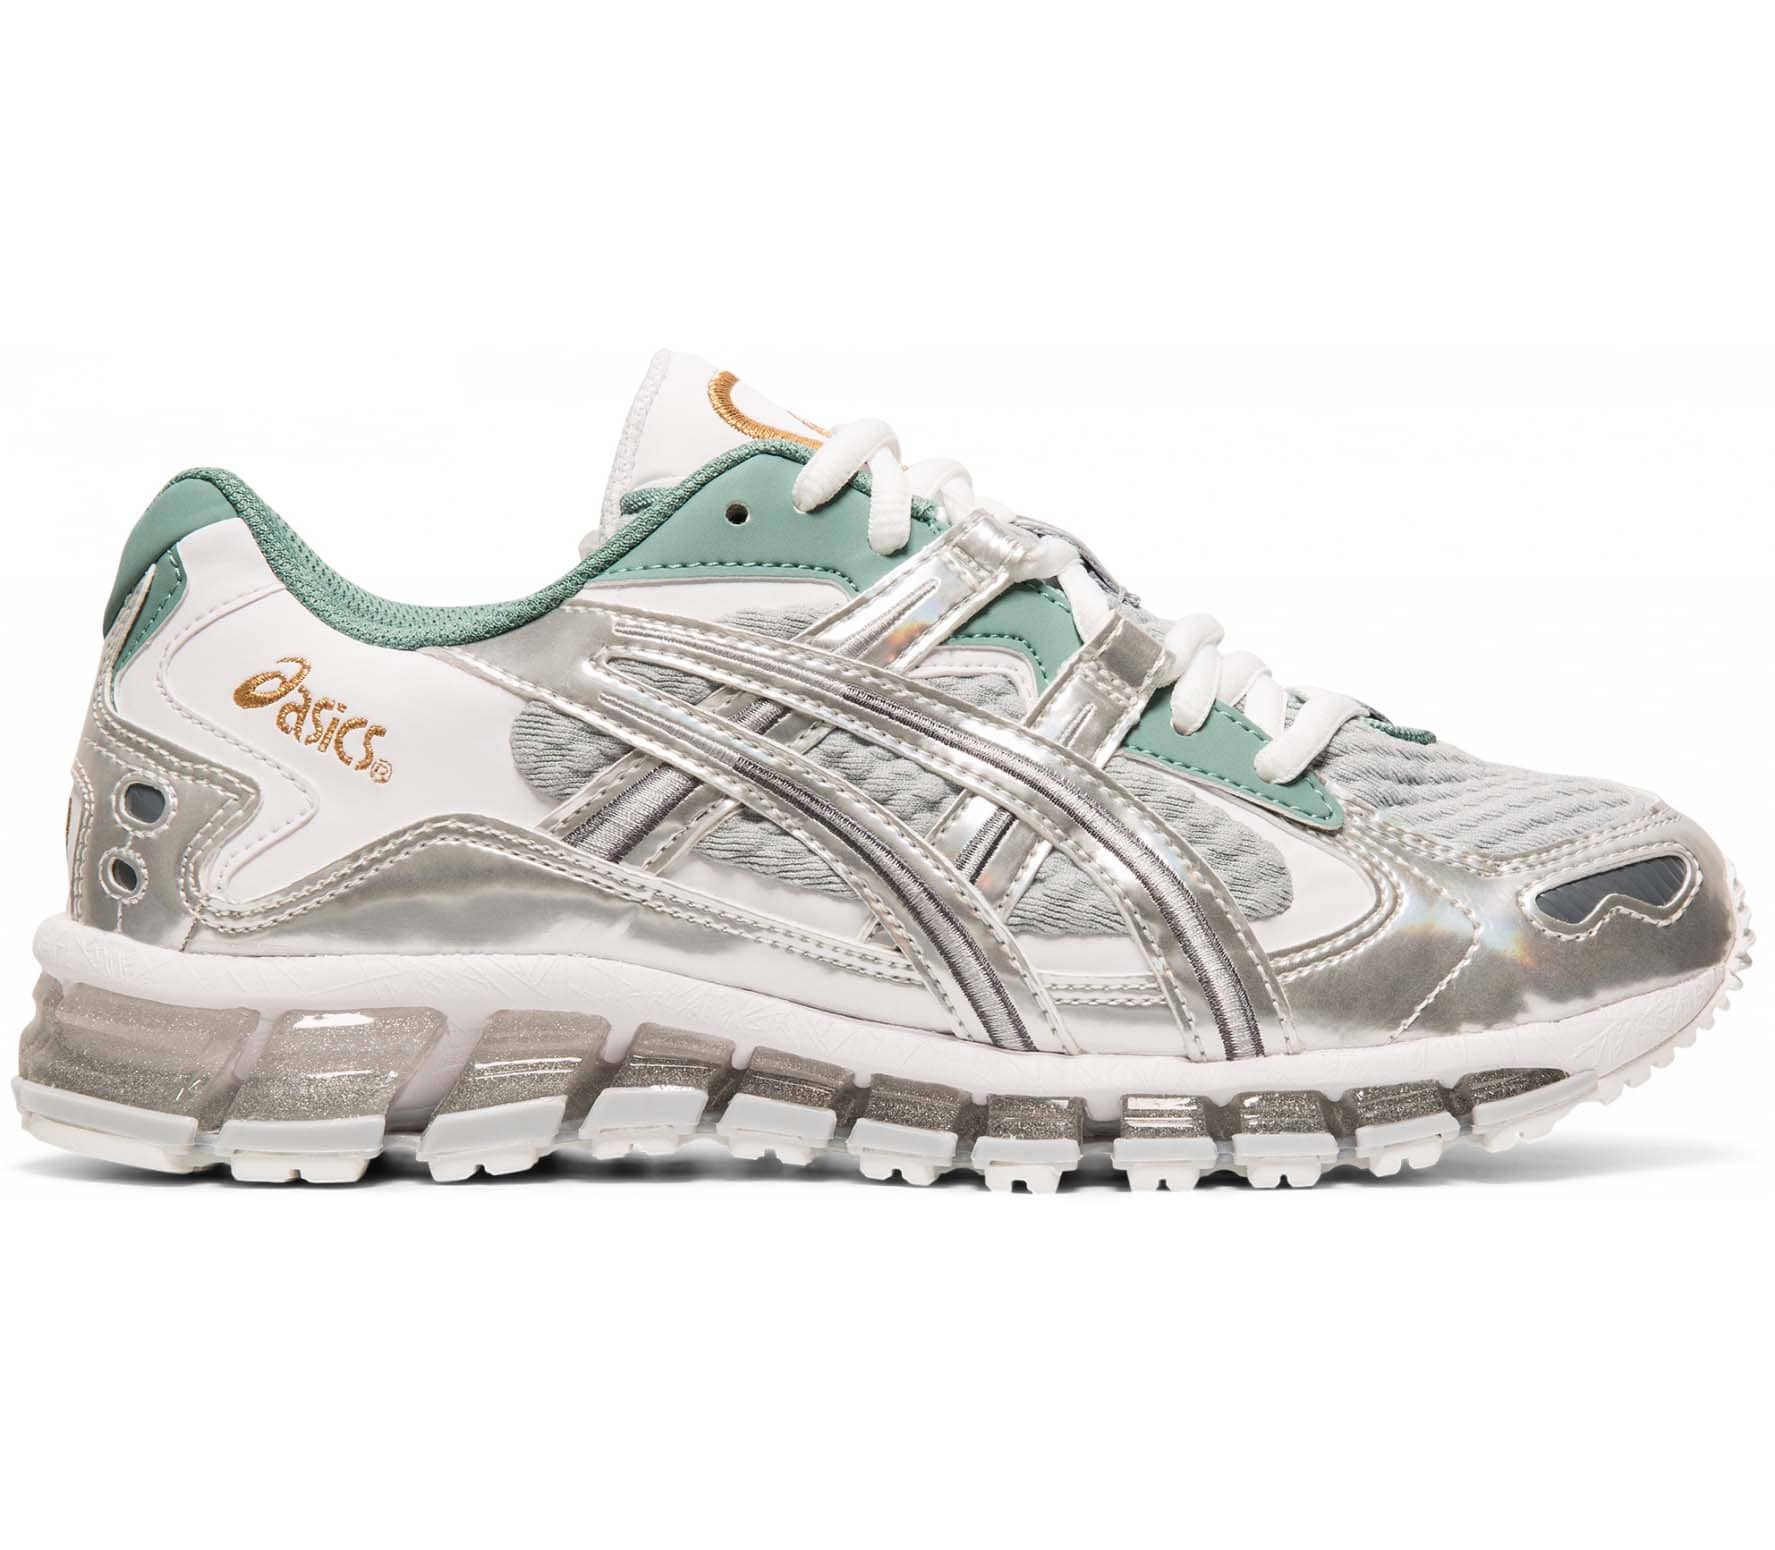 GEL KAYANO 5 360 Dames Sneakers